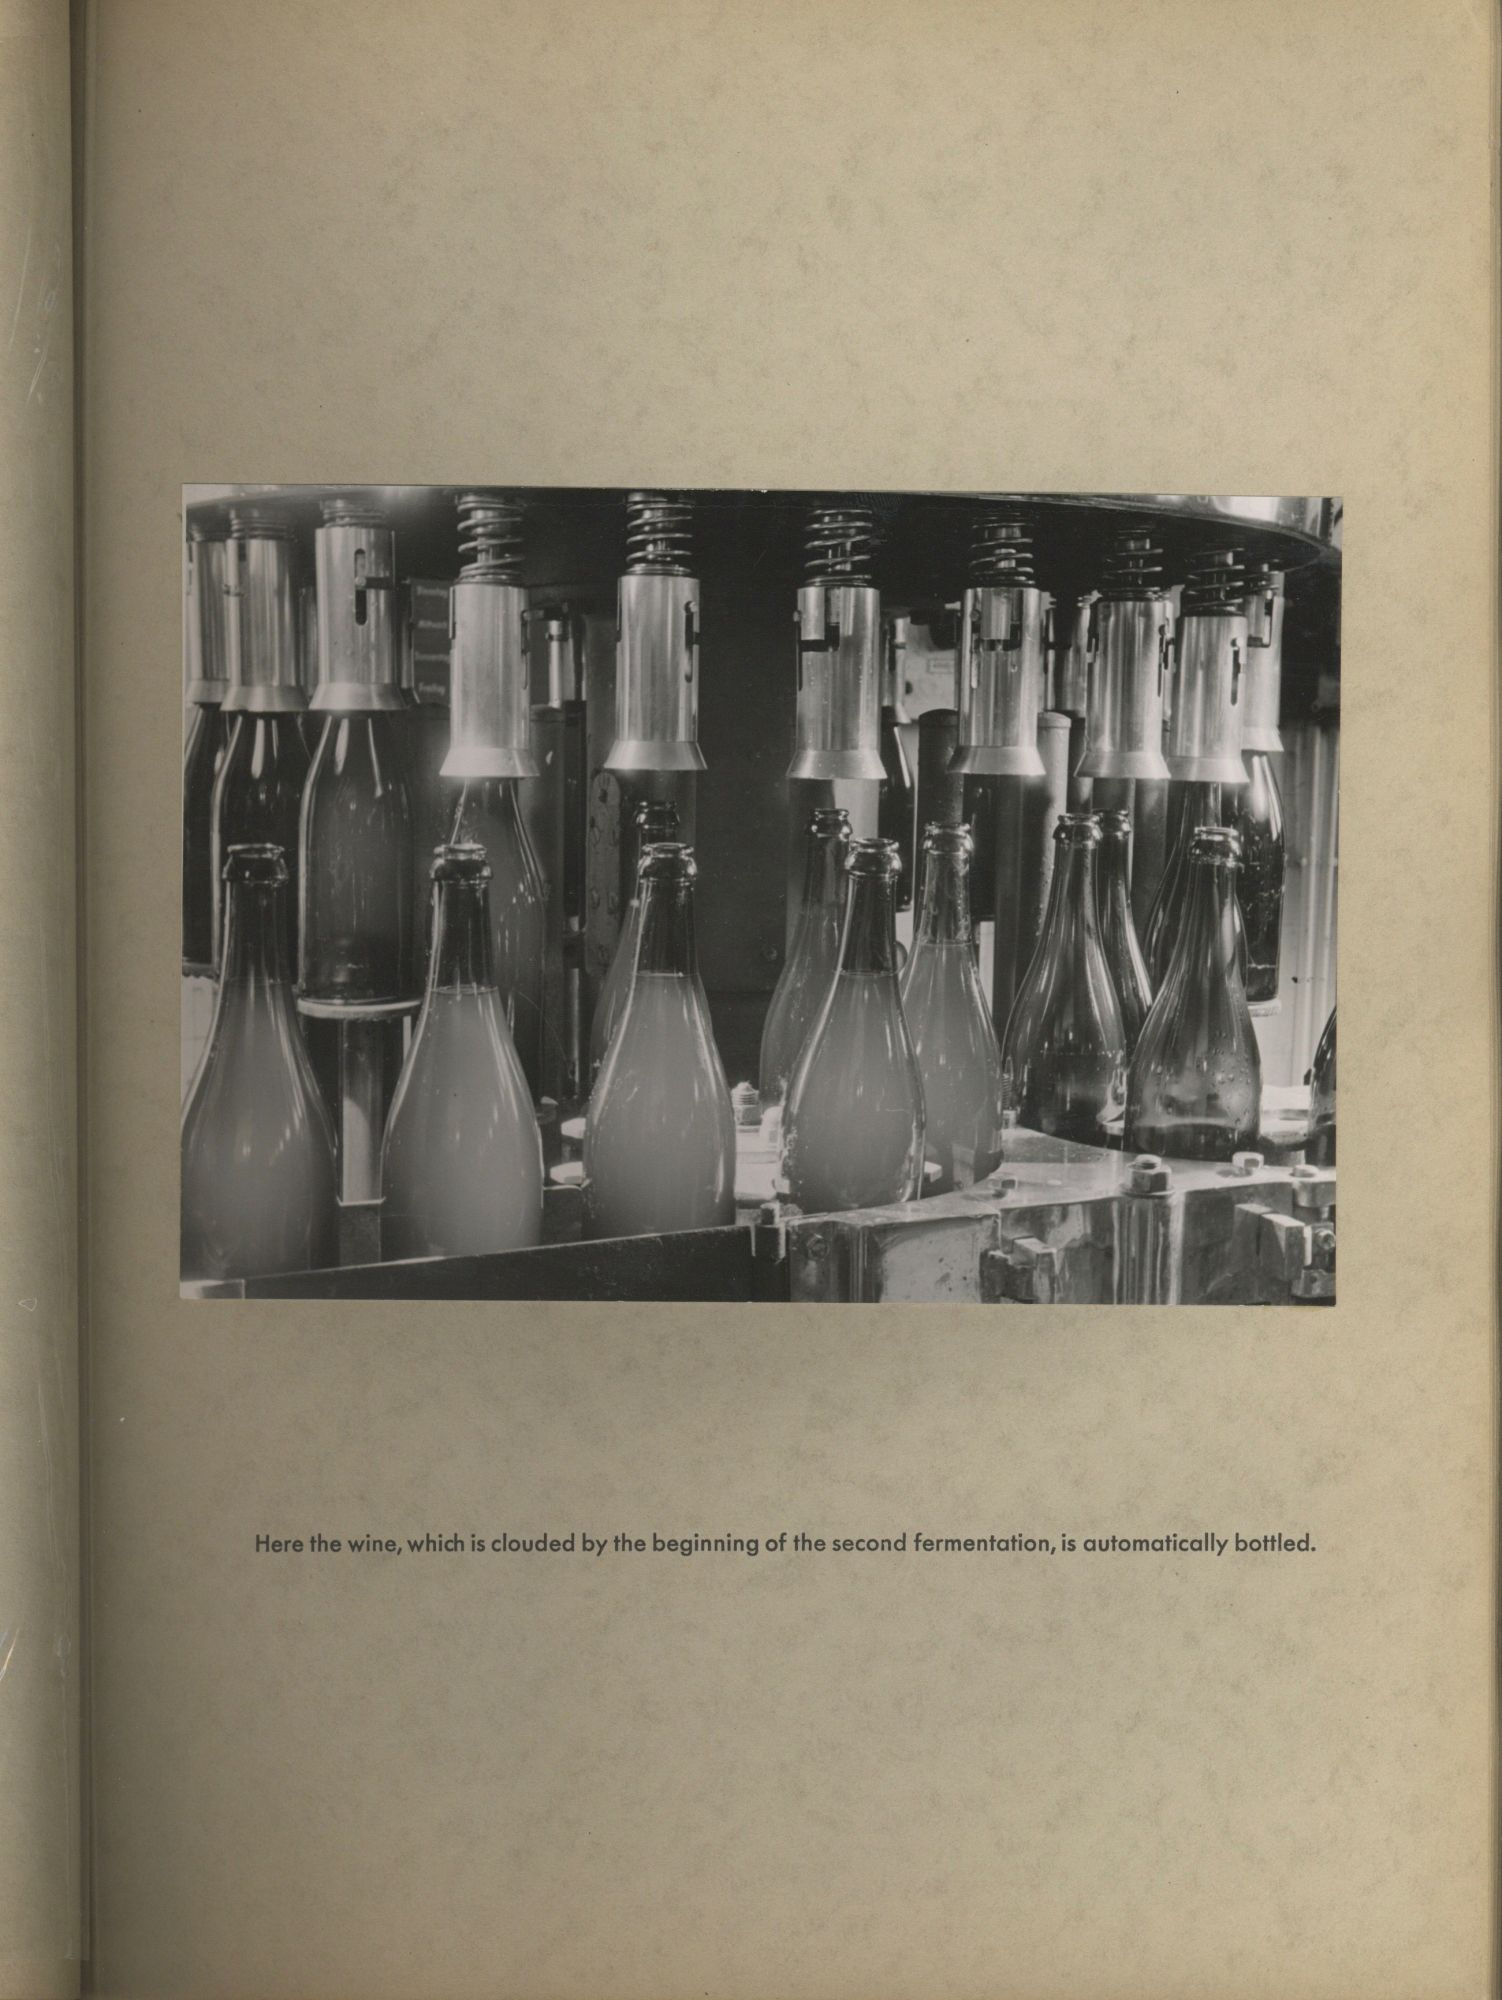 [Untitled Photograph Album Documenting Production Facilities of Henkell Trocken]. Photo Album - Sparkling Wine, Henkell & Co.